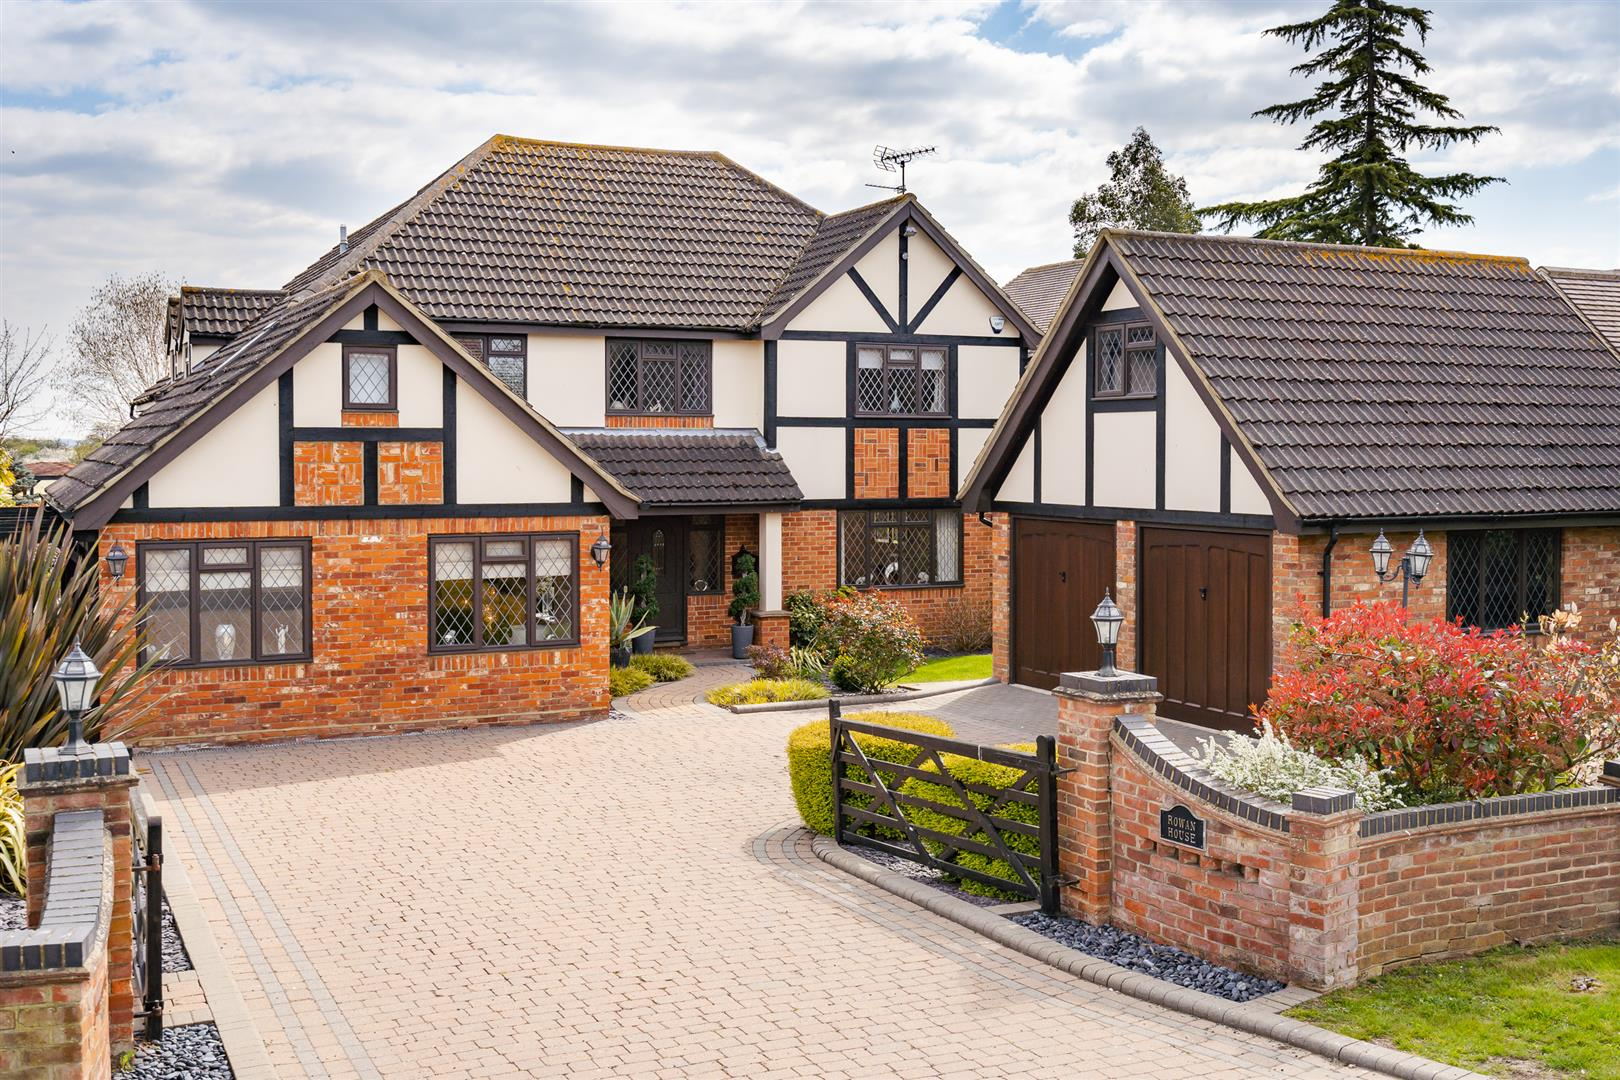 beautiful family home in North Farmbridge Essex with Fine & country